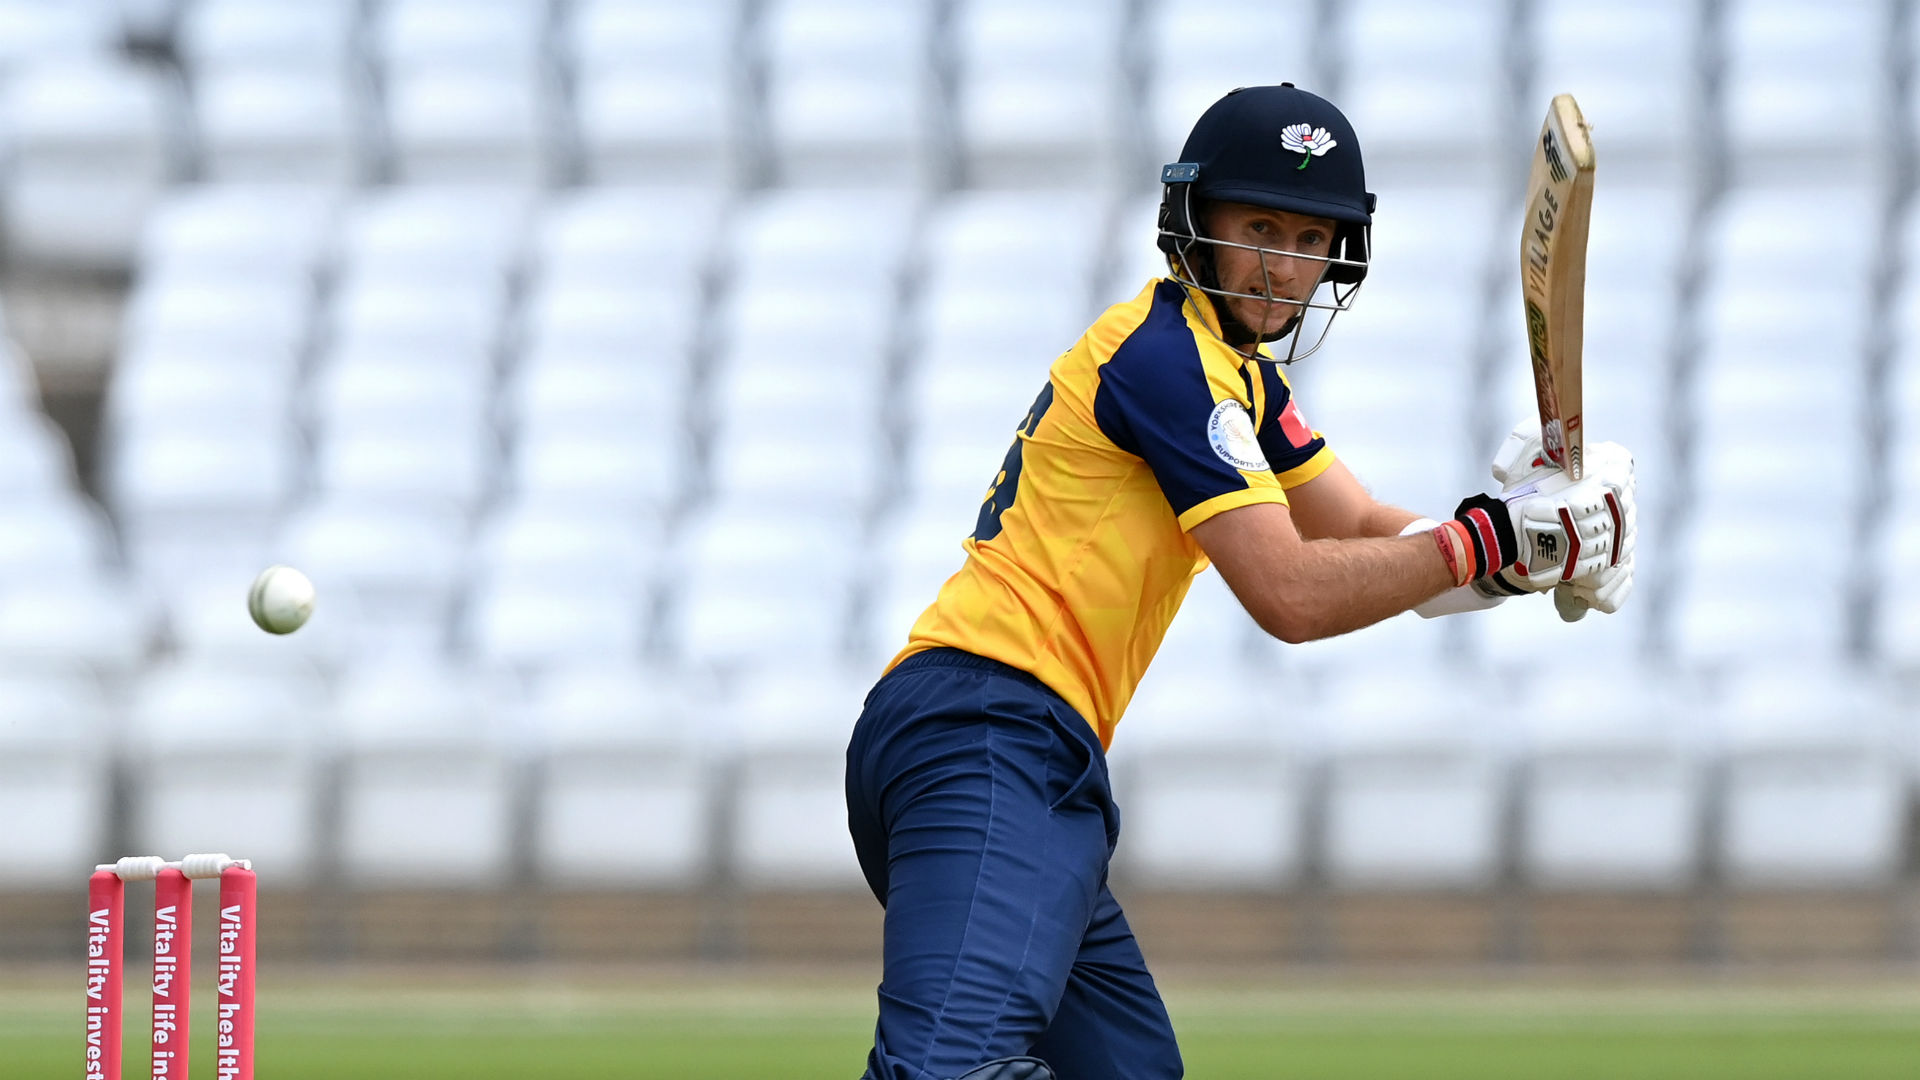 Root overlooked for Australia T20 series, Roy could make ODI return